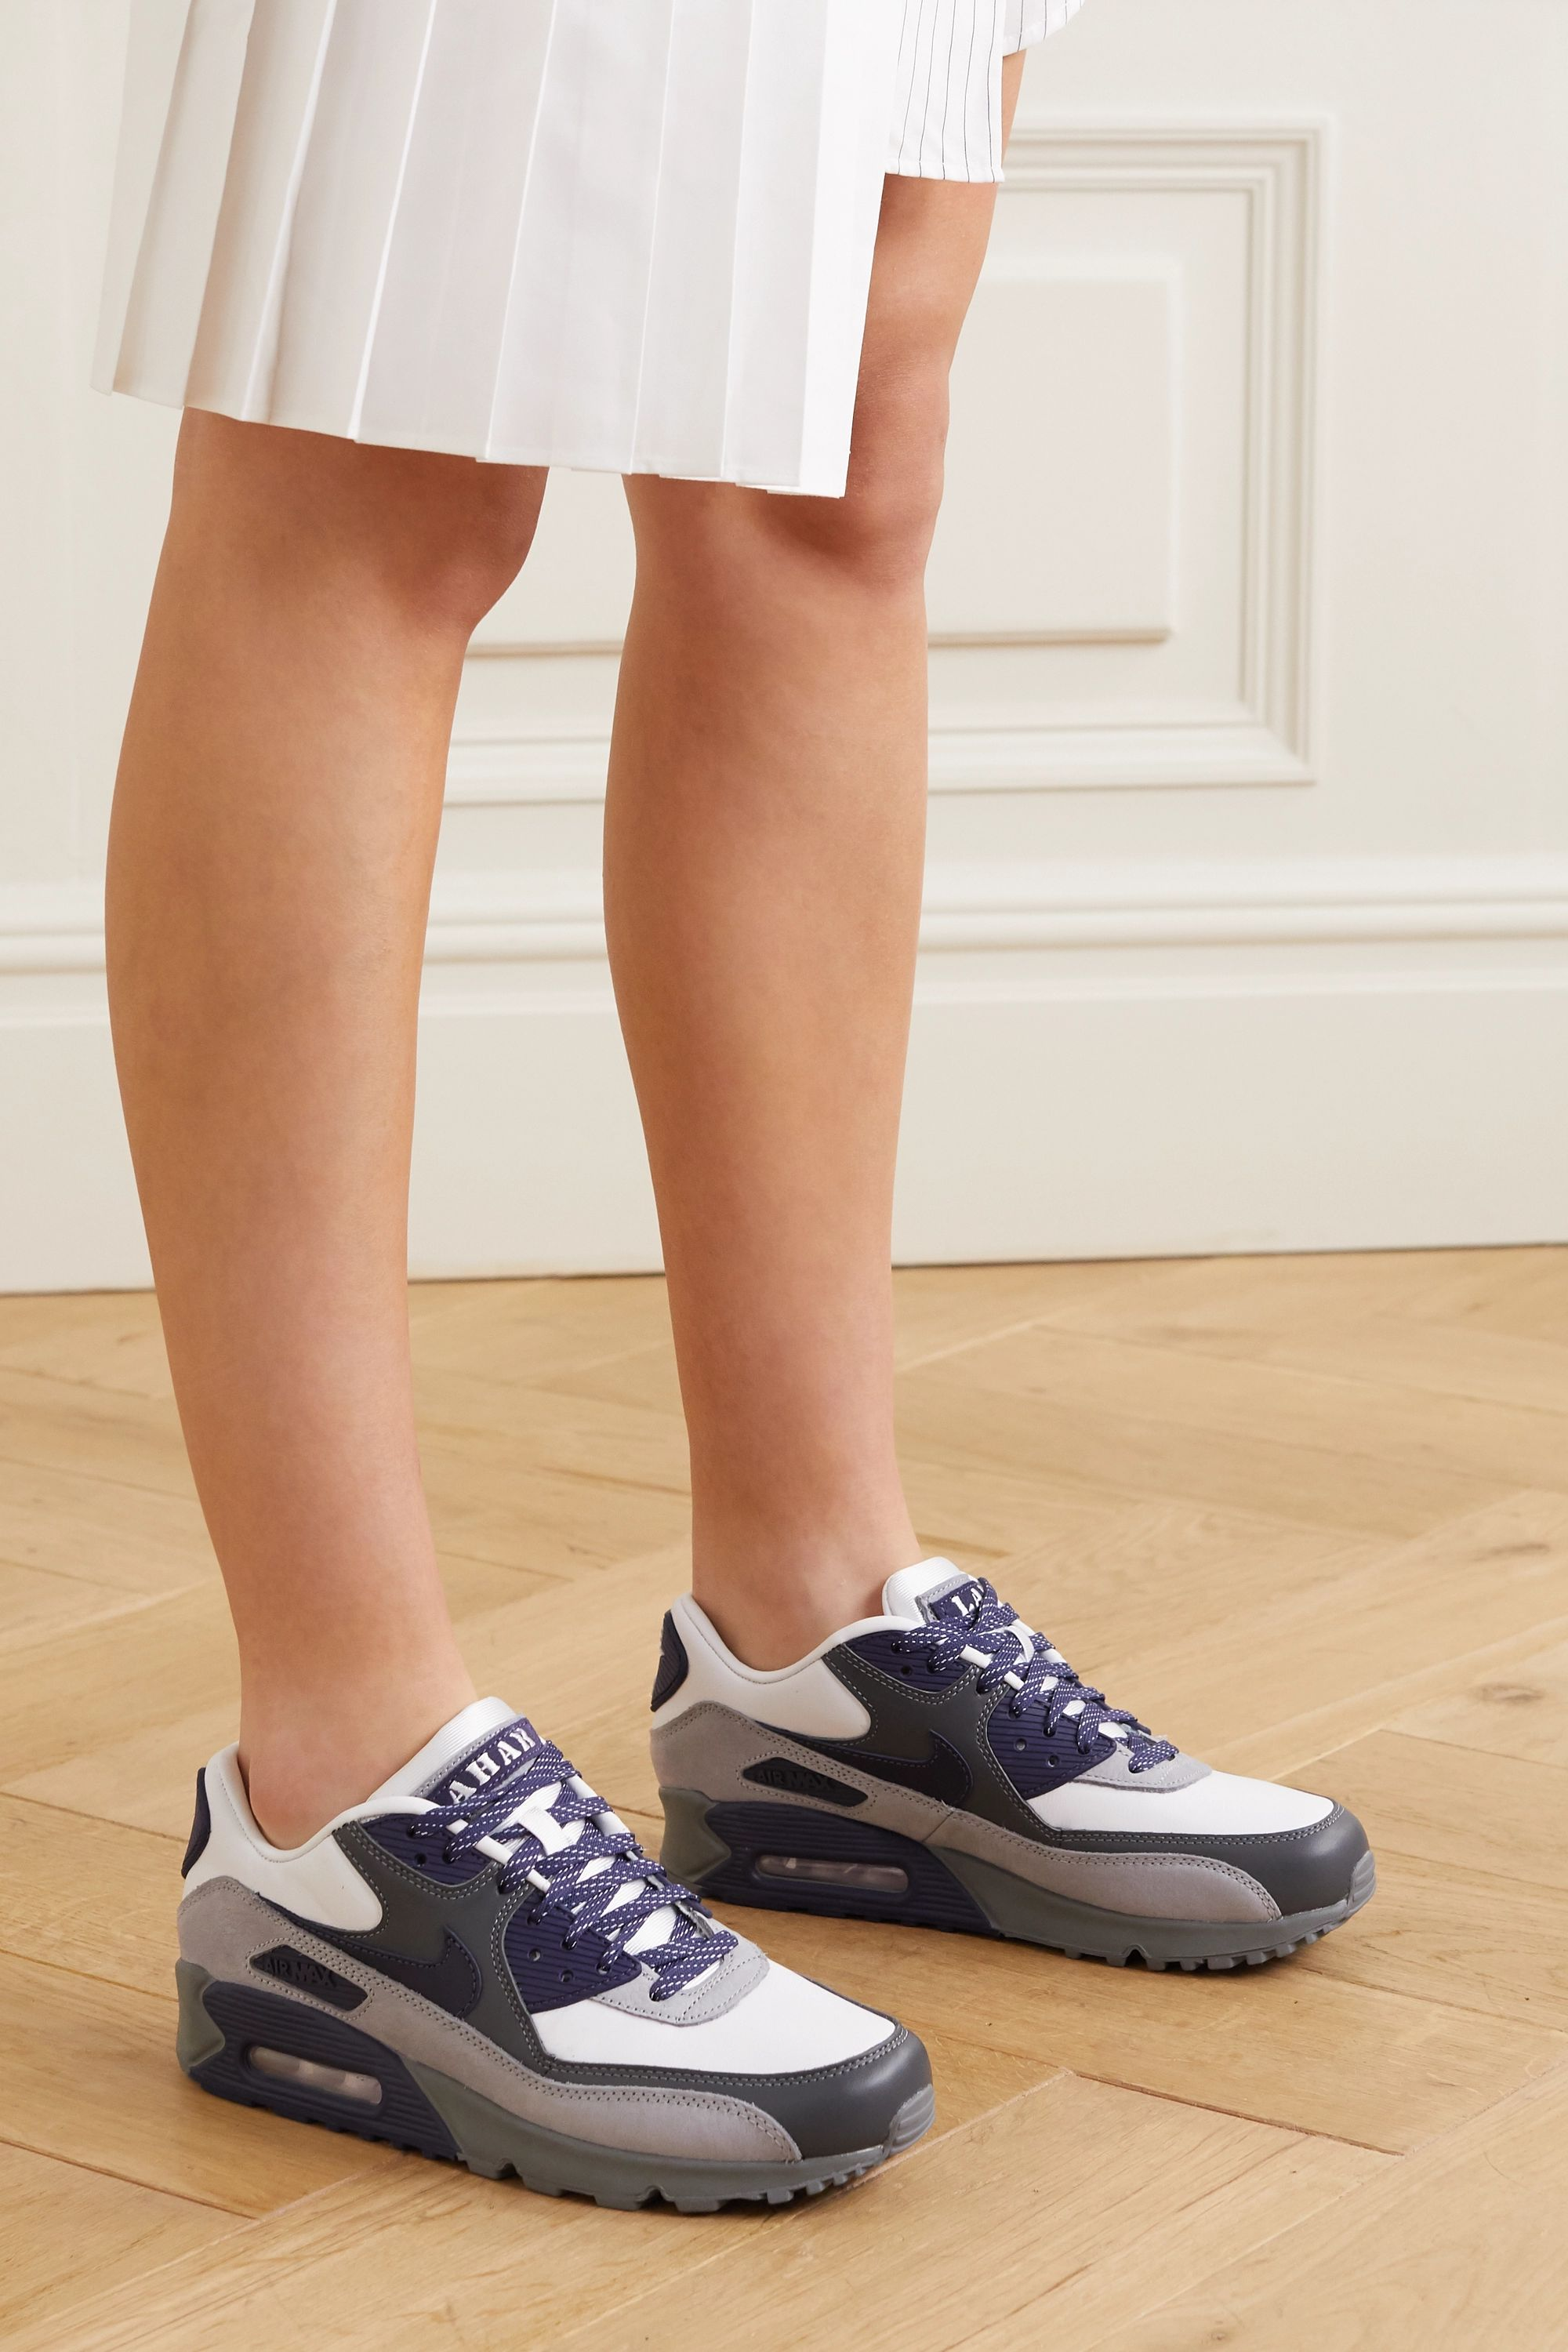 Nike Air Max 90 NRG Lahar Escape leather sneakers